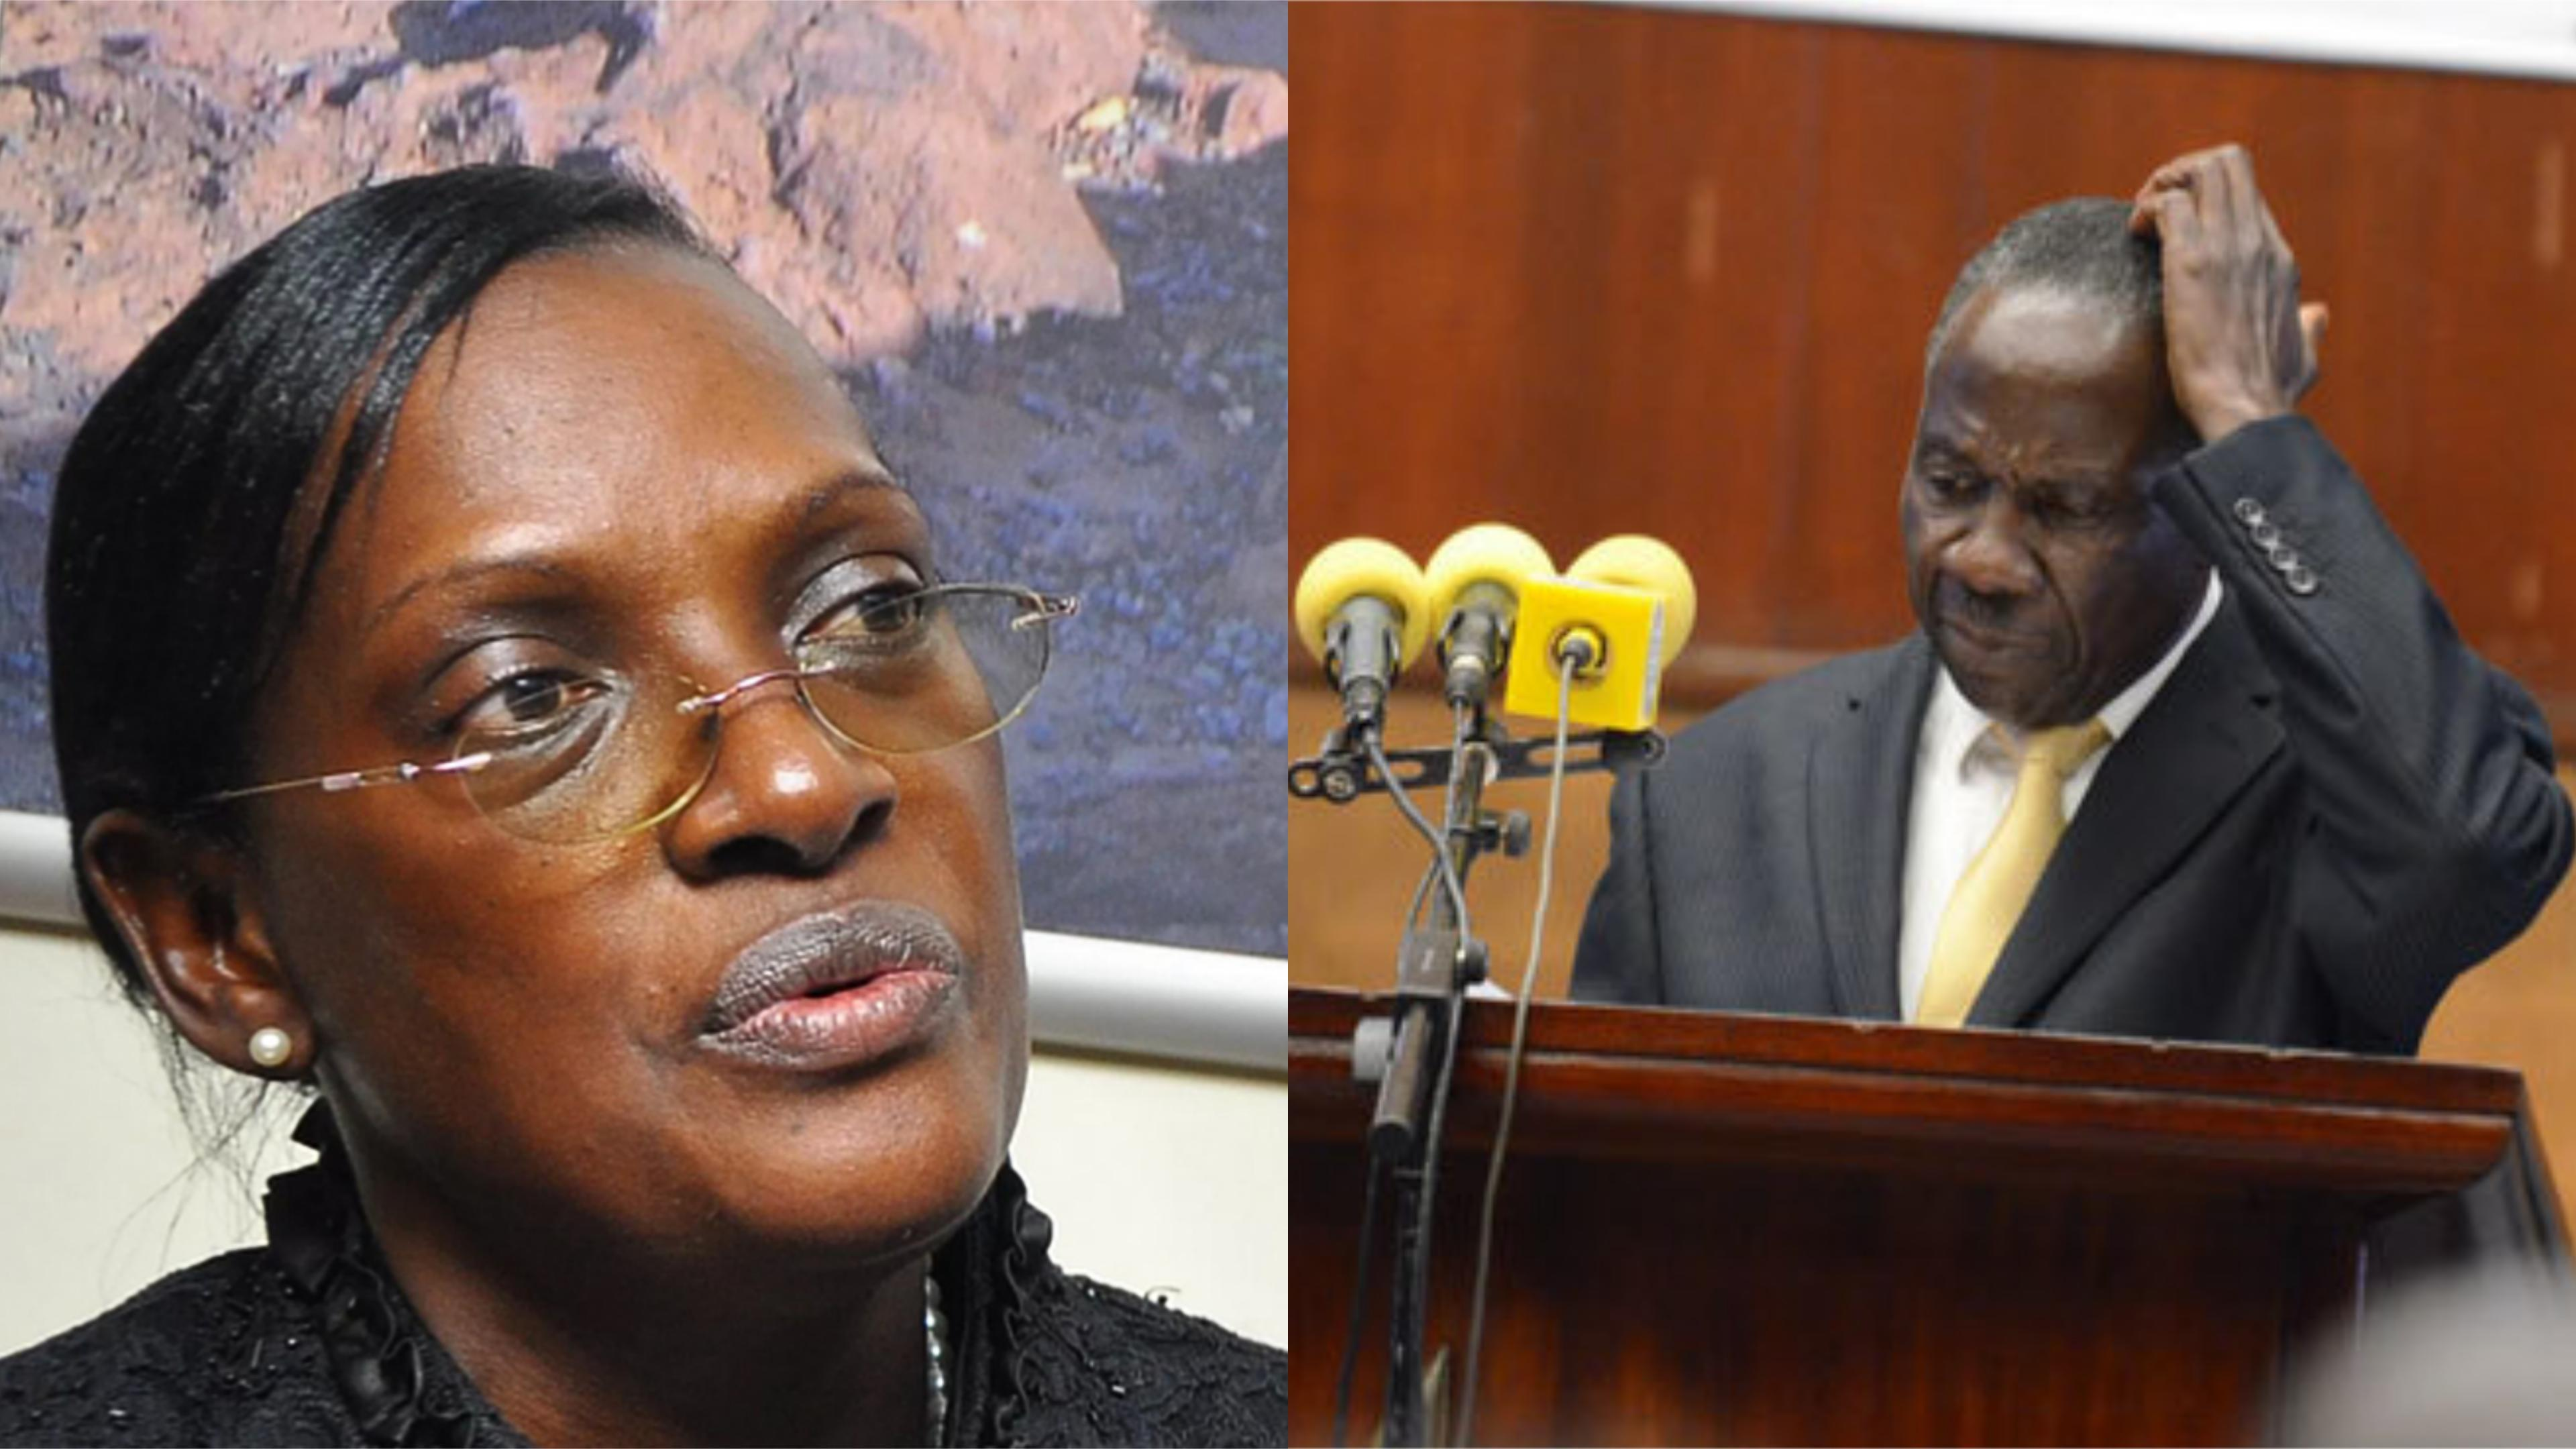 Finance Minister, Matia Kasaija faces a petition to reverse the reappointment of ex-BoU Director of Supervision, Justine Bagyenda to FIA board (FILE PHOTO)